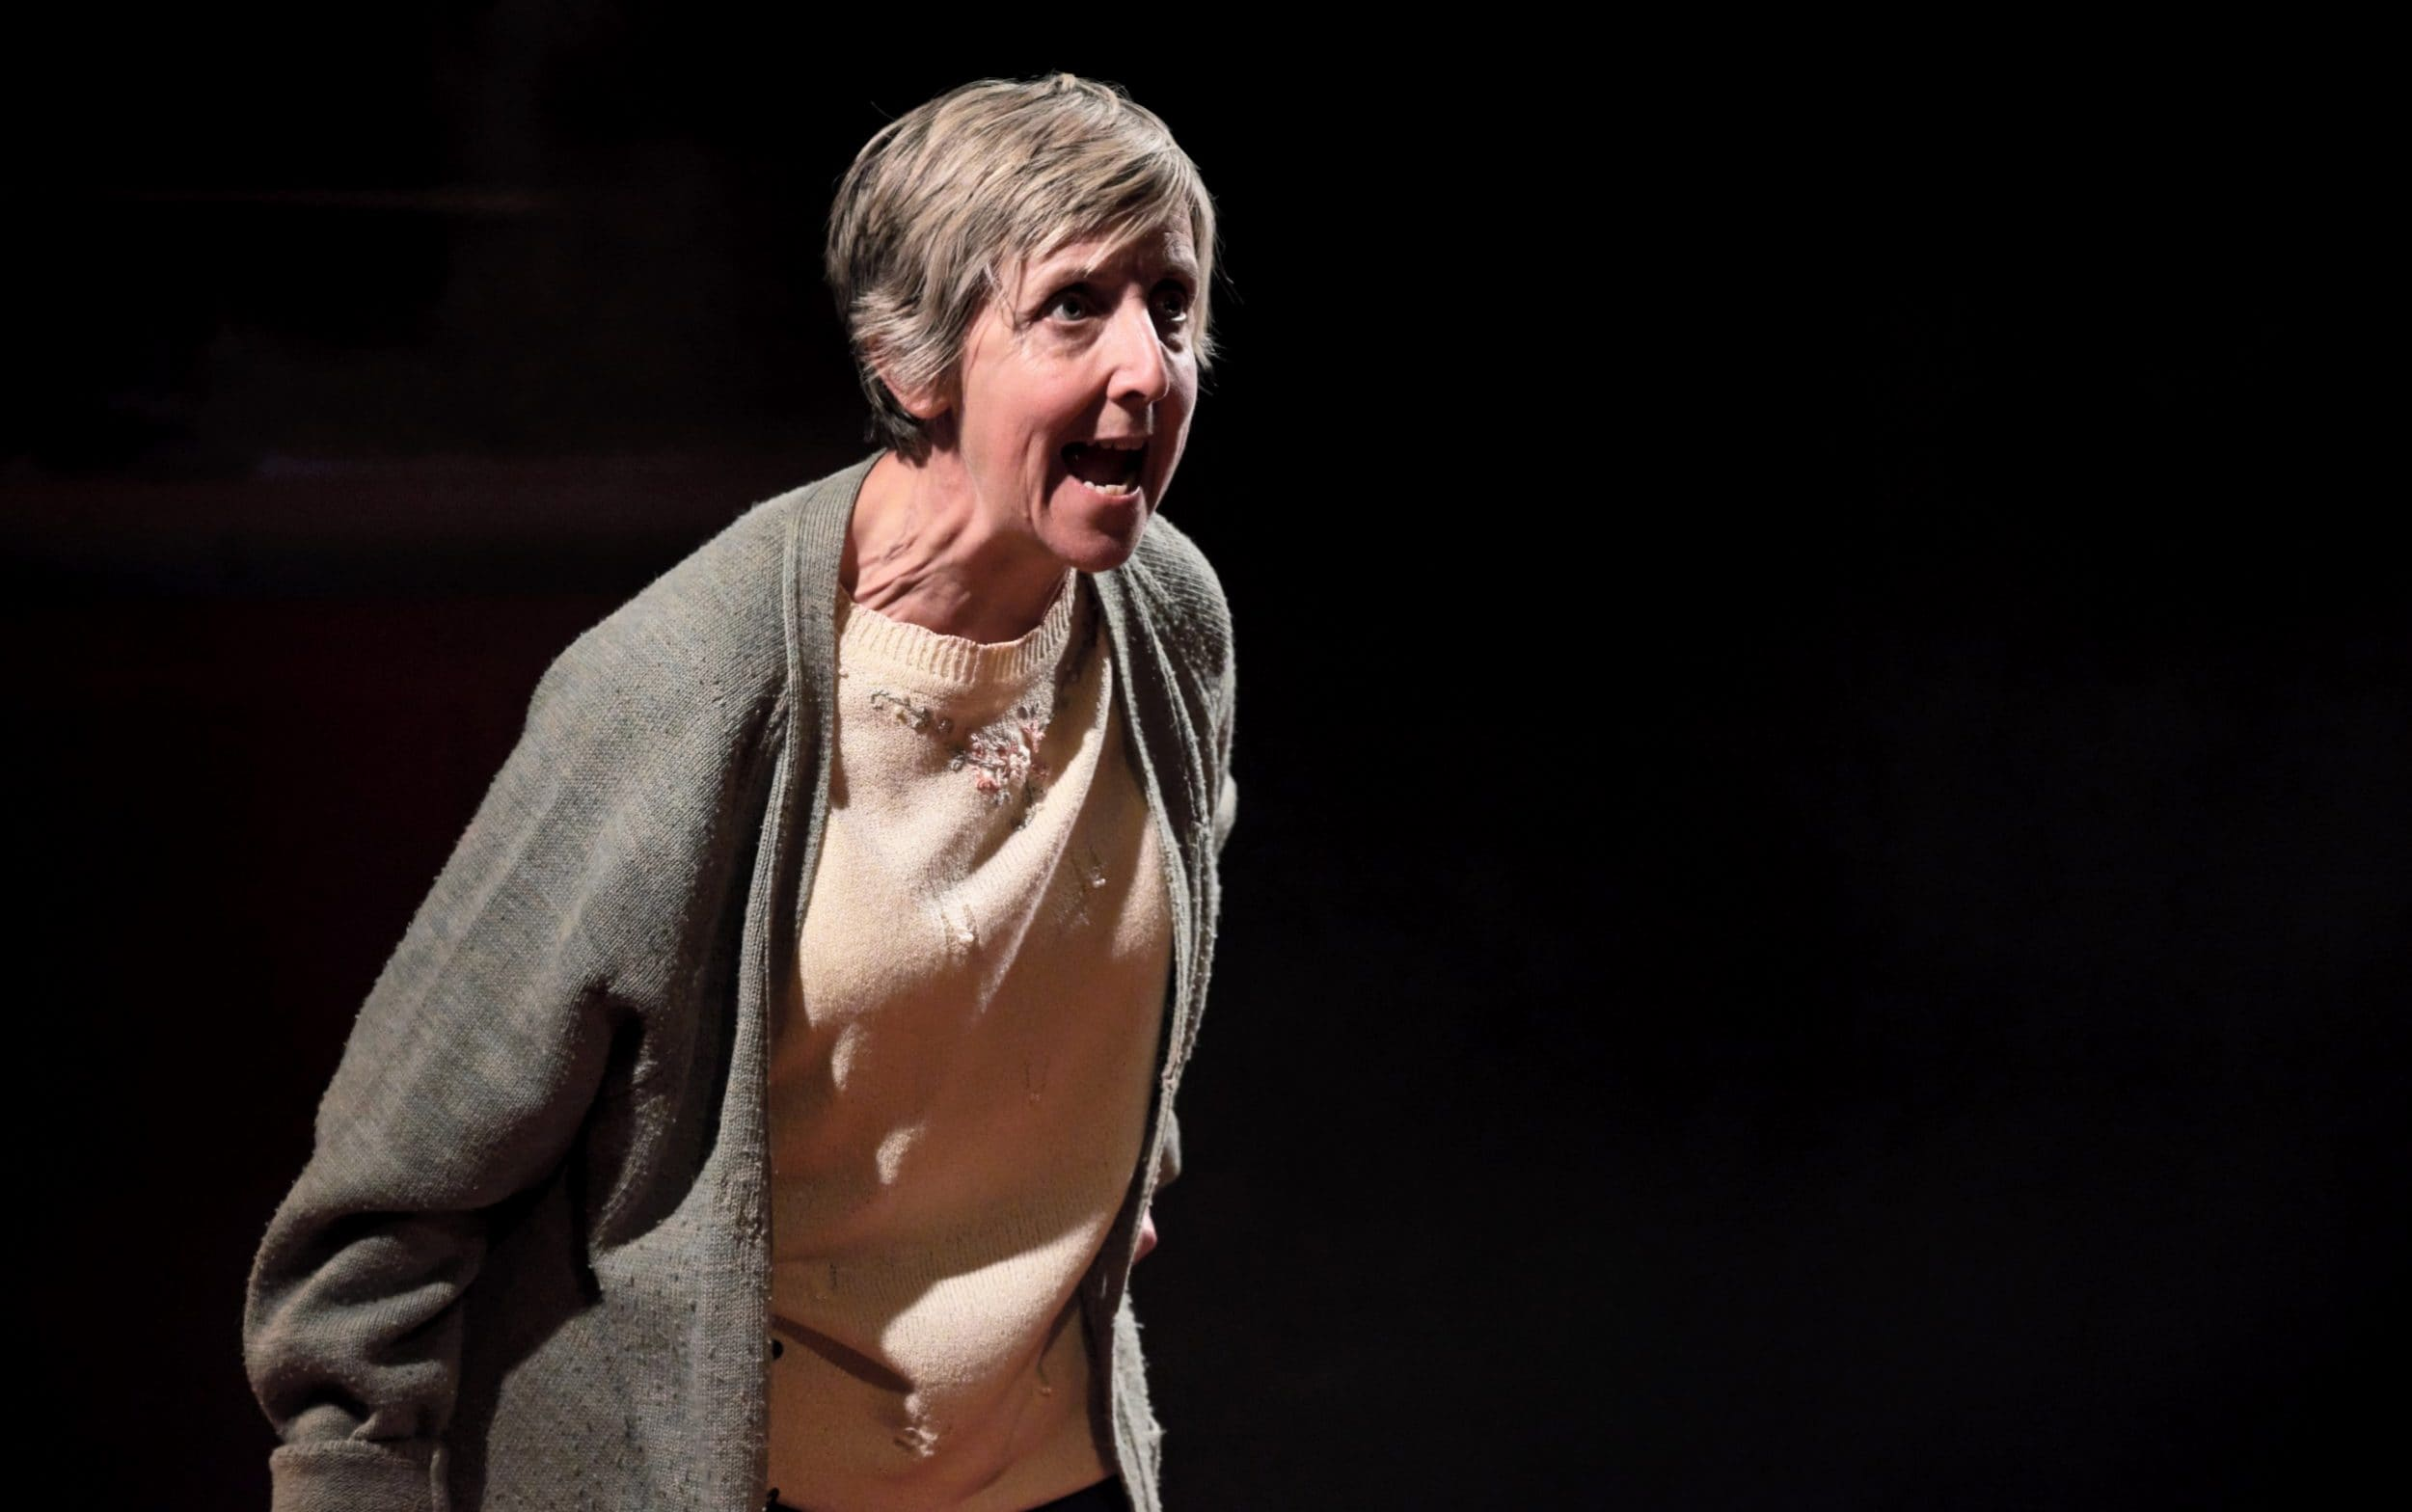 Julie Hesmondhalgh in There Are No Beginnings at Leeds Playhouse. Design, Camilla Clarke; lighting design, Amy Mae. Photo: Zoe Martin.